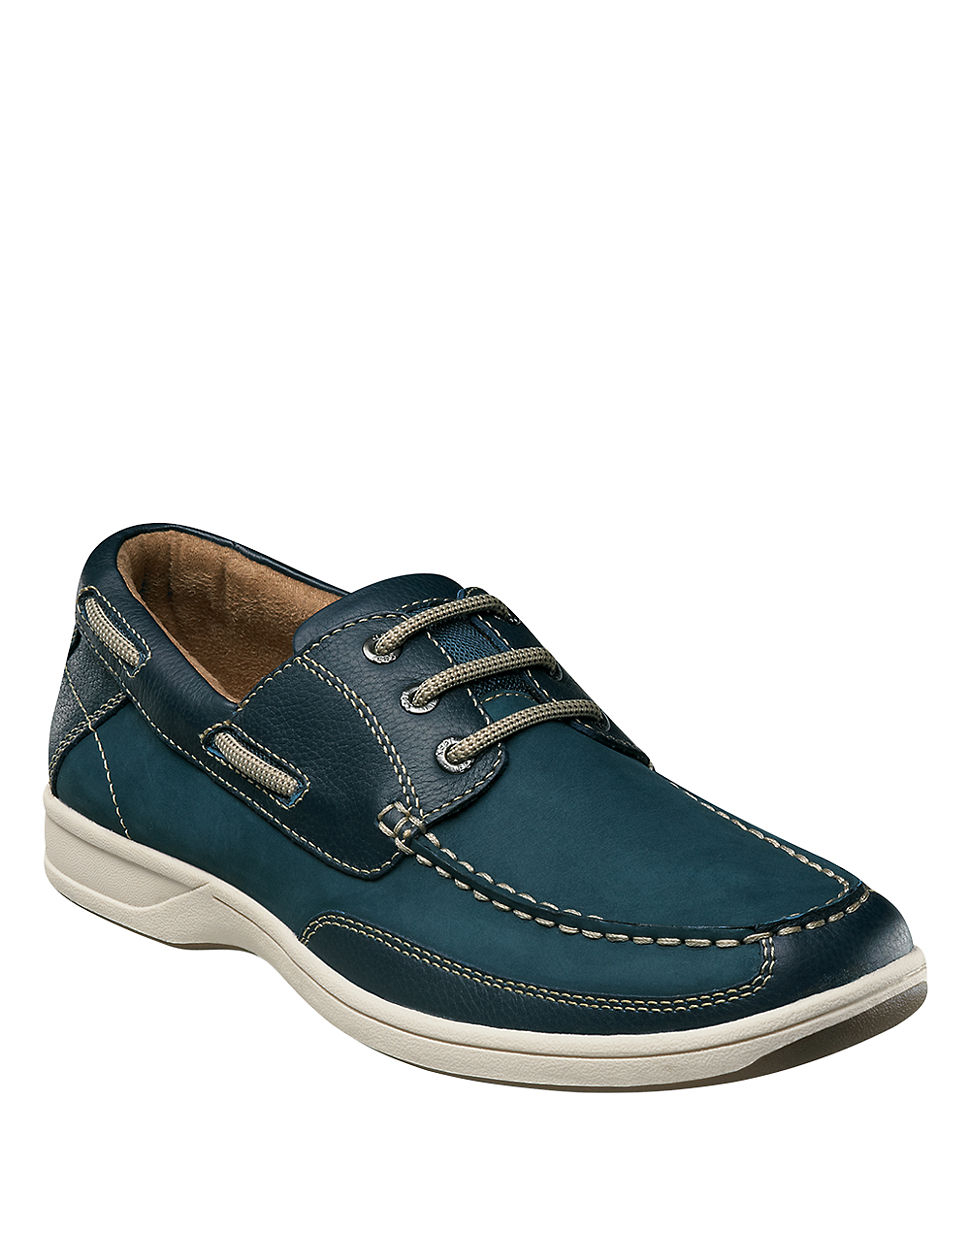 Blue Womens Boat Shoes